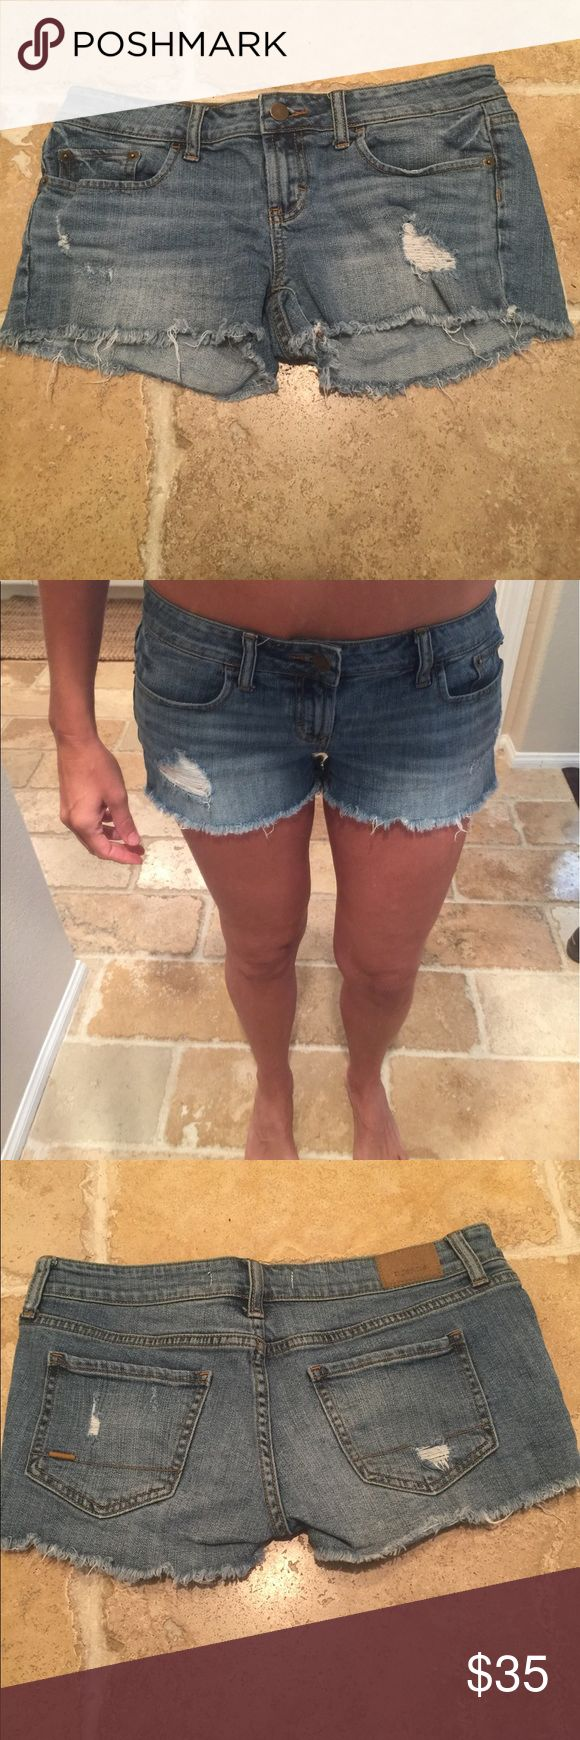 """Lightly distressed jean shorts by R. Jeans Sits low on hip. Medium wash - so cute! 15"""" waist, 8.25"""" long in front 10"""" long in back. Bundle with my other Jean shorts for discount!! R. jeans Shorts Jean Shorts"""